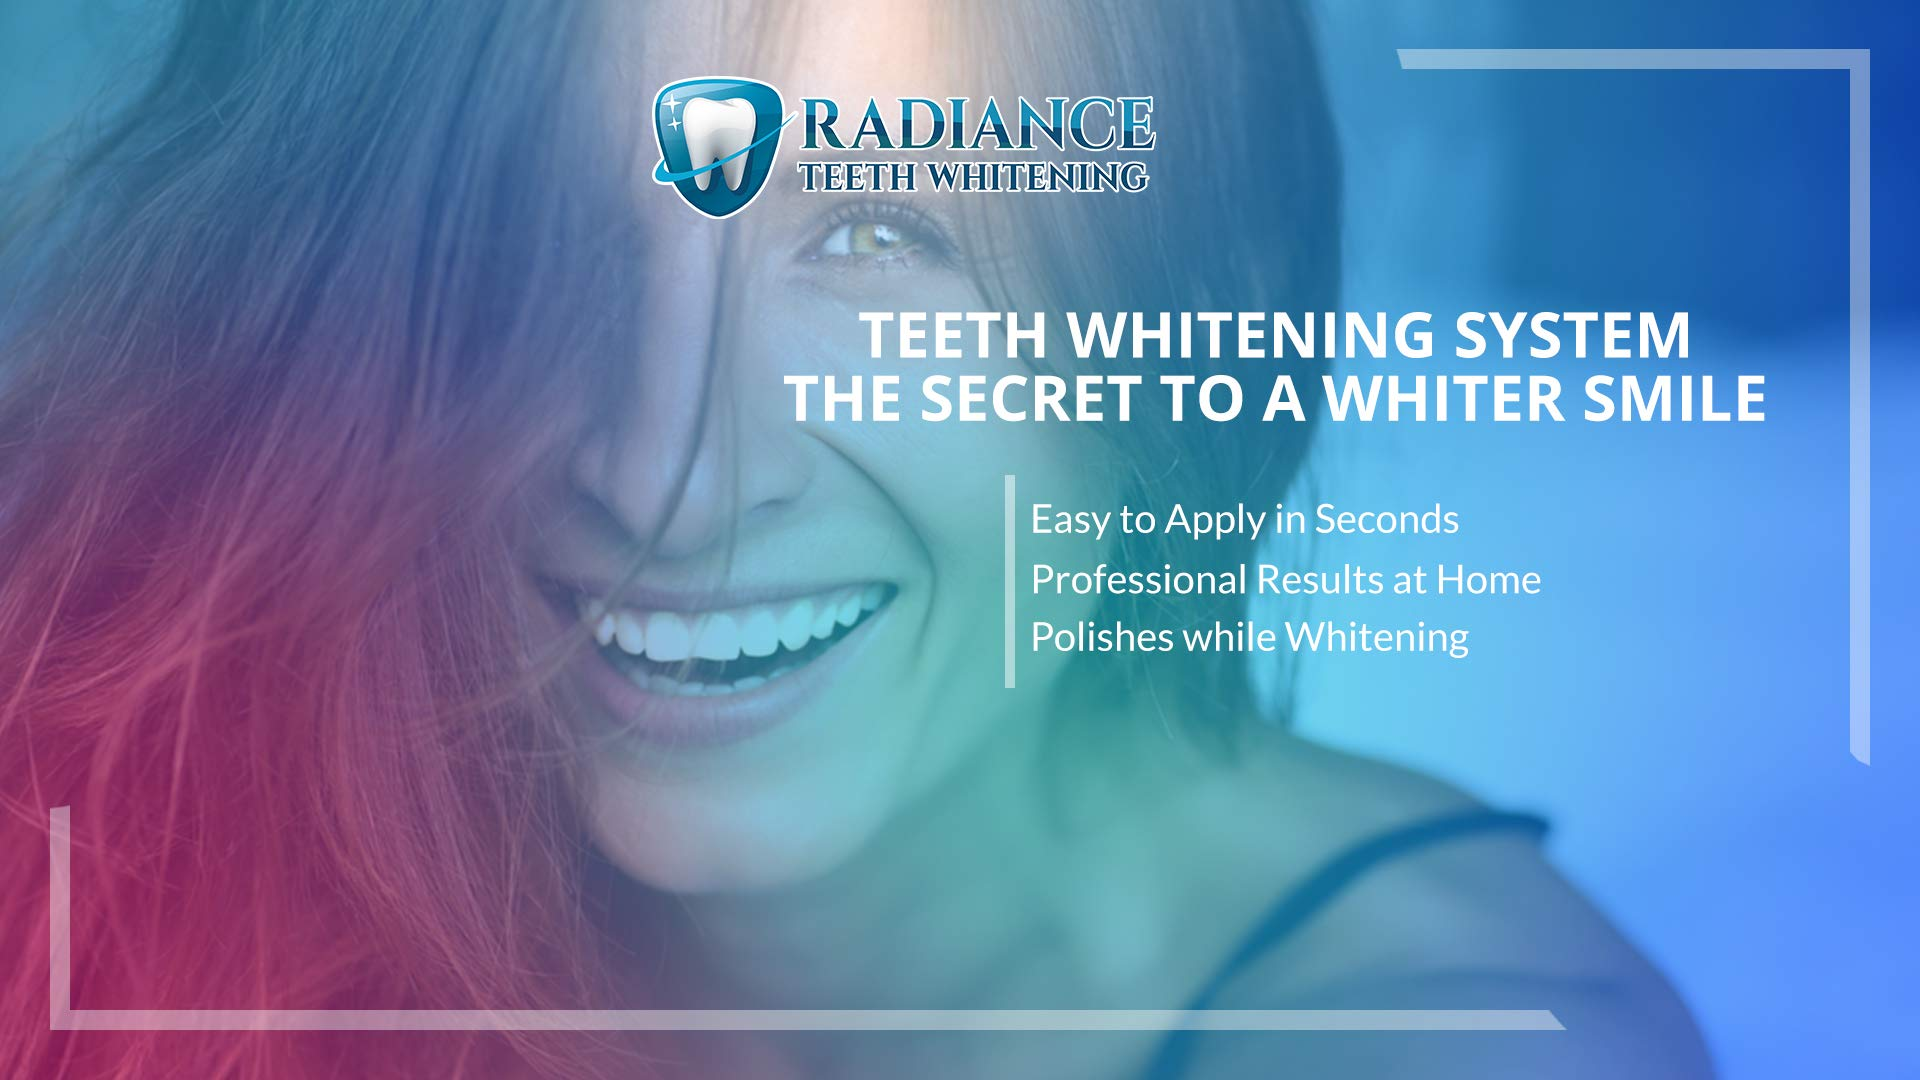 Radiance Teeth Whitening Pen - Quick and Easy to Use! - Compact for Convenience - Brighter, Whiter Teeth - Professional Grade